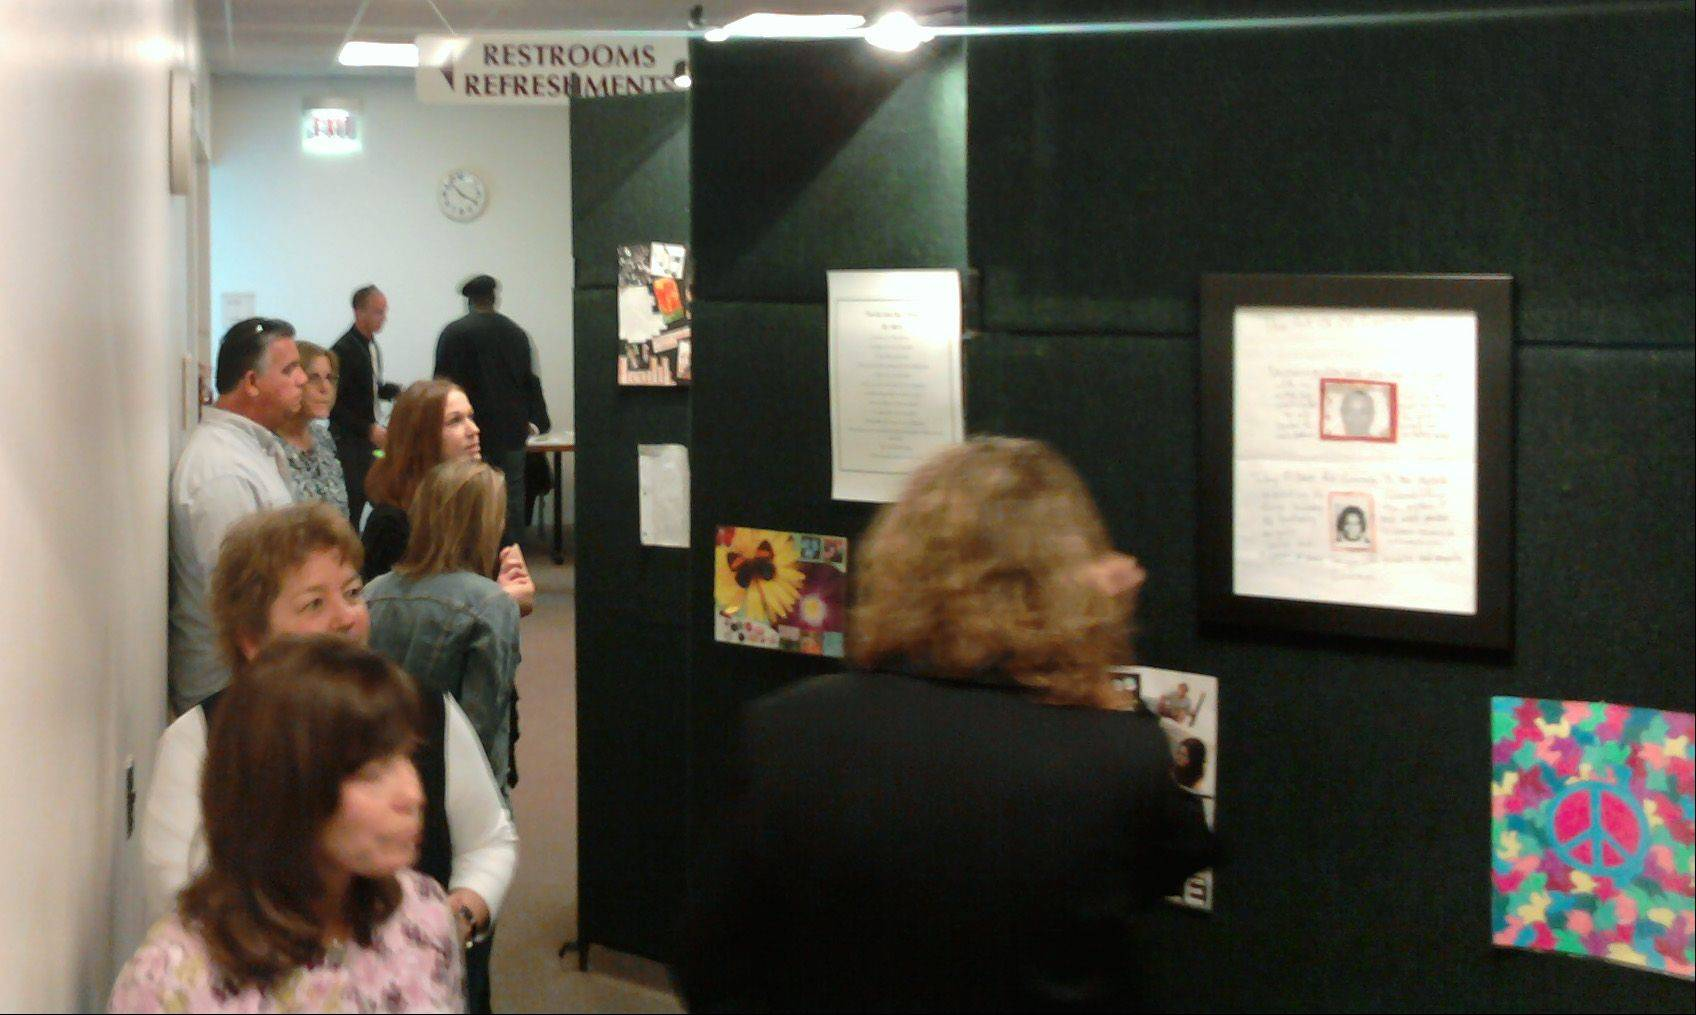 The Kane County Drug Rehabilitation Court's first Fine Art and Written Word Extravaganza featured more than 80 paintings and collages and nearly 100 essays and poems about overcoming addiction. It was held Wednesday at the judicial center in St. Charles.